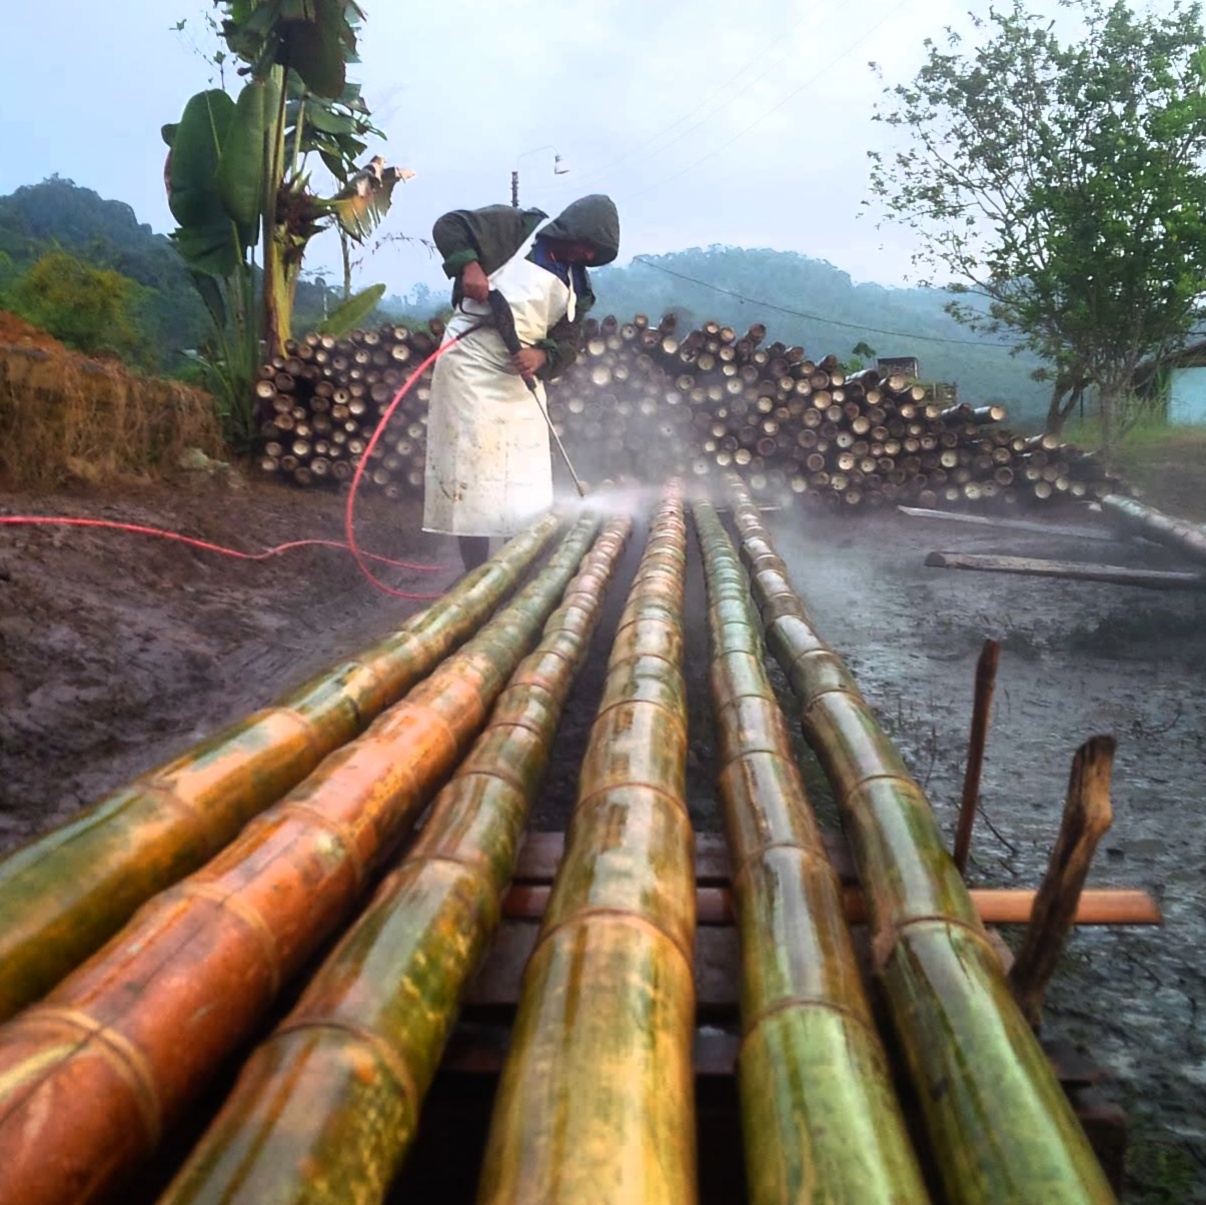 bamboo-cleaning.jpg